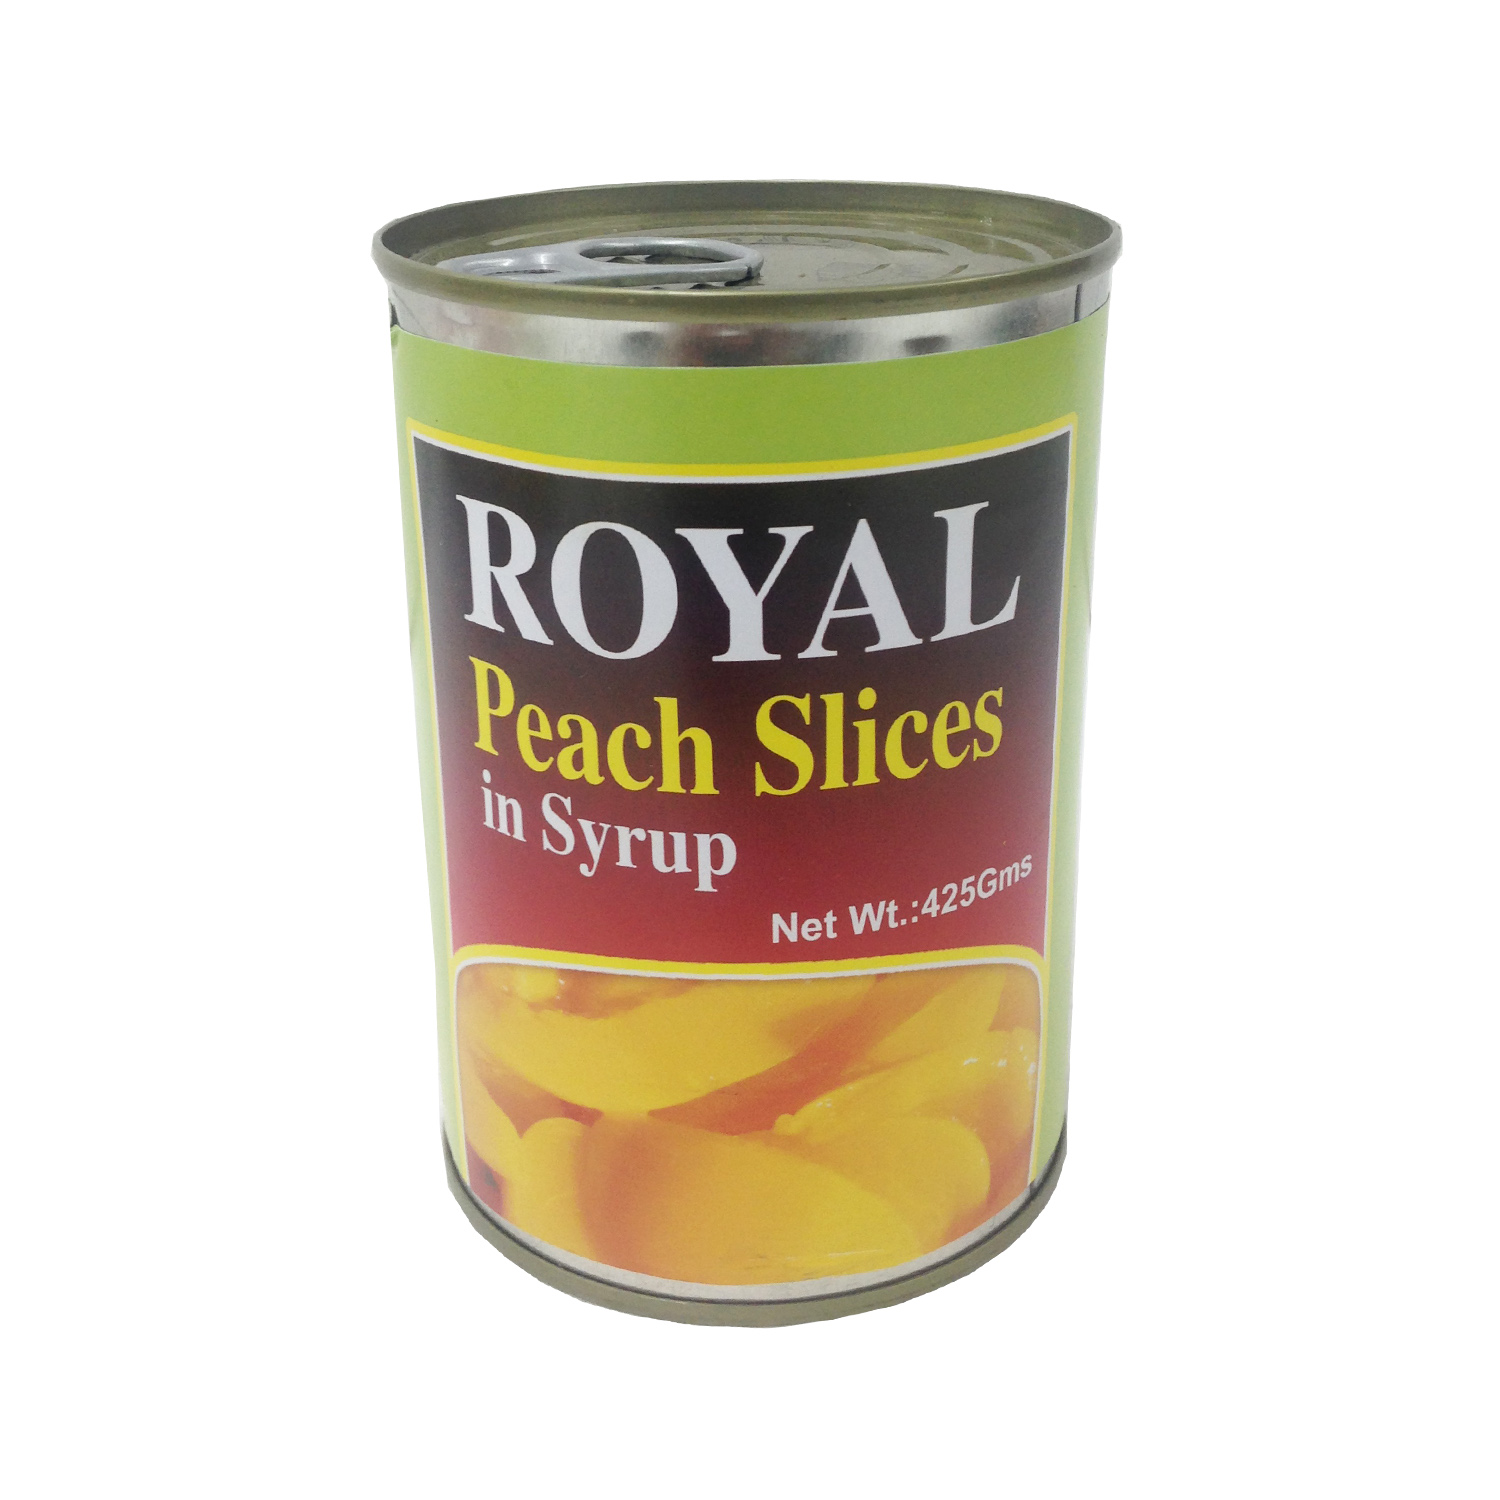 Royal Peach Slices